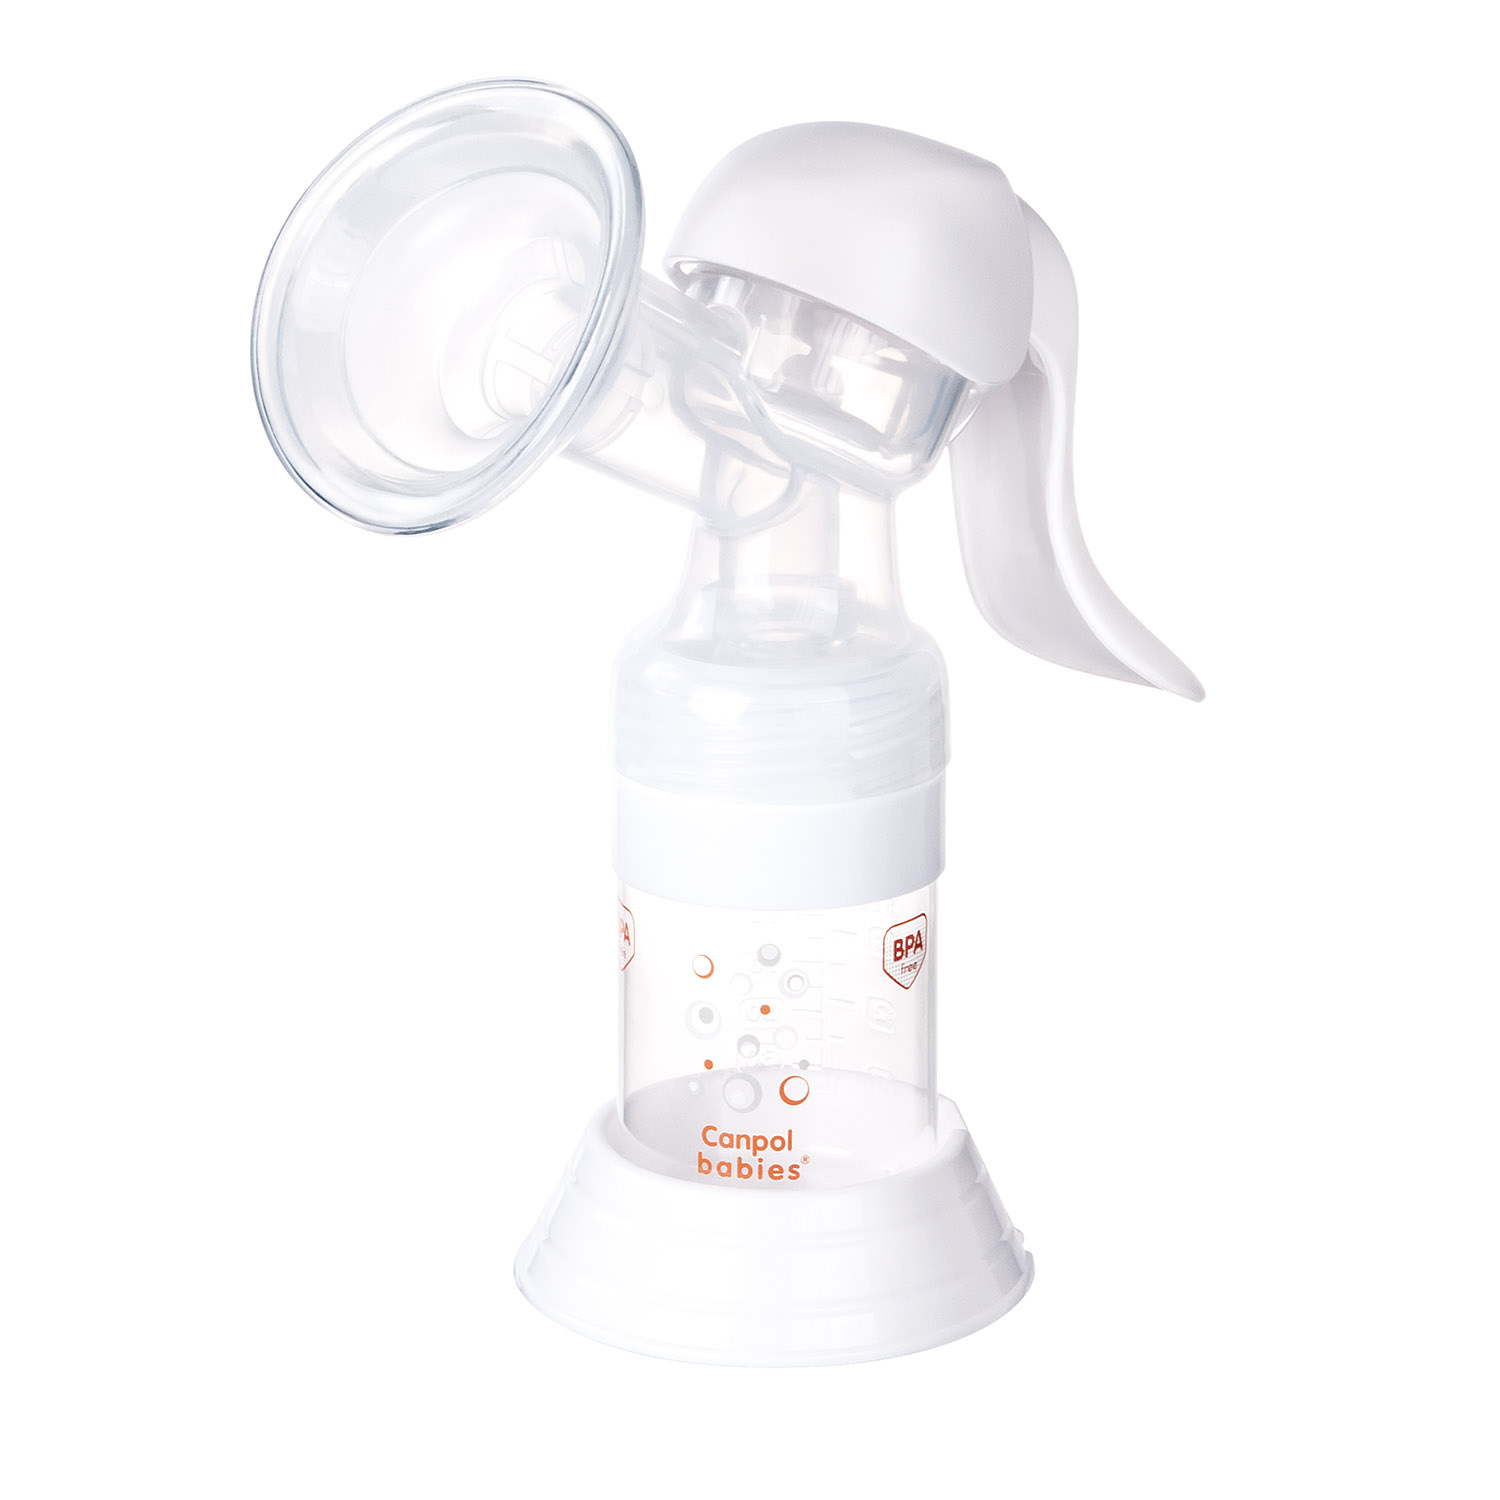 Canpol babies Basic Manual Breast Pump